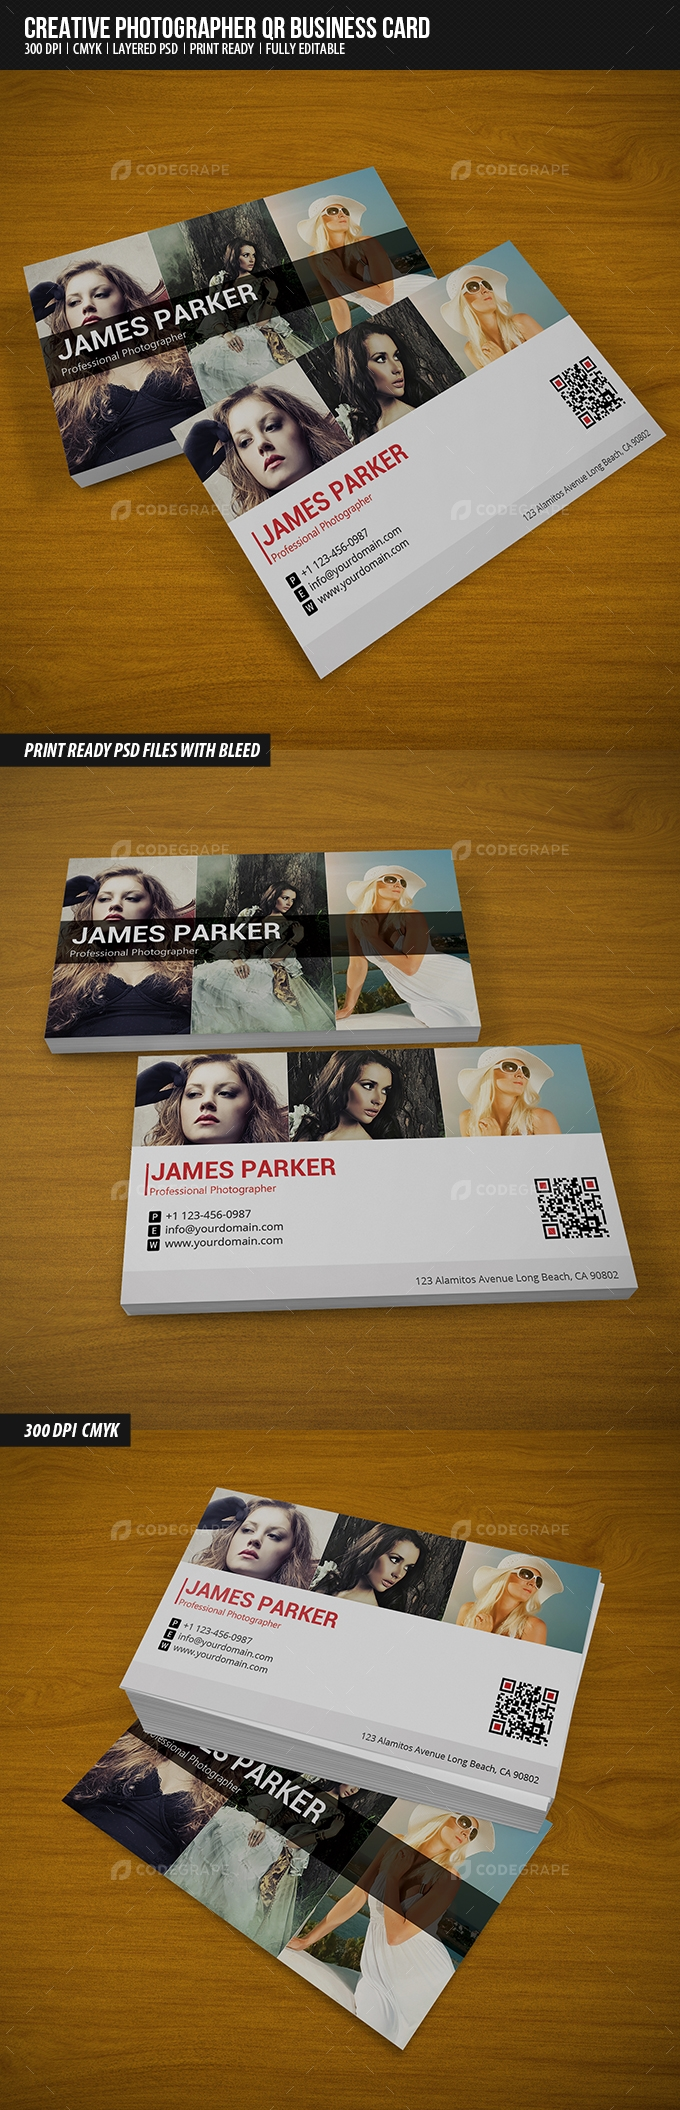 Creative Photographer QR Business Card